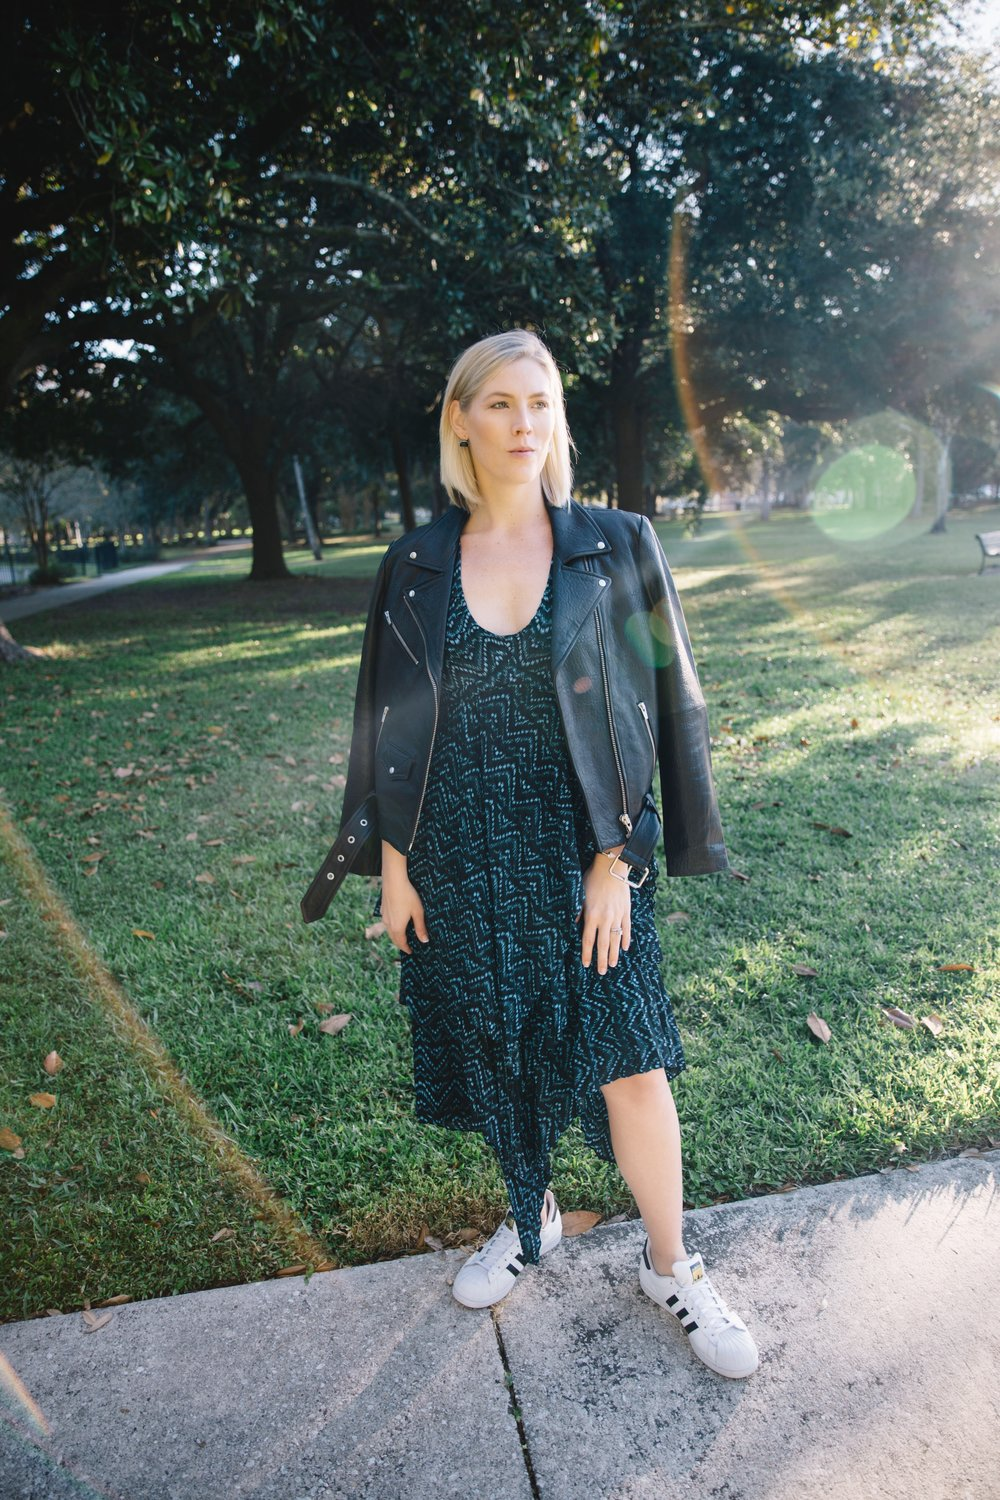 ALC Dress and Veda Jacket for Spring Style | What to Wear in Cold Spring Weather featured by top US fashion blog, The Borrowed Babes